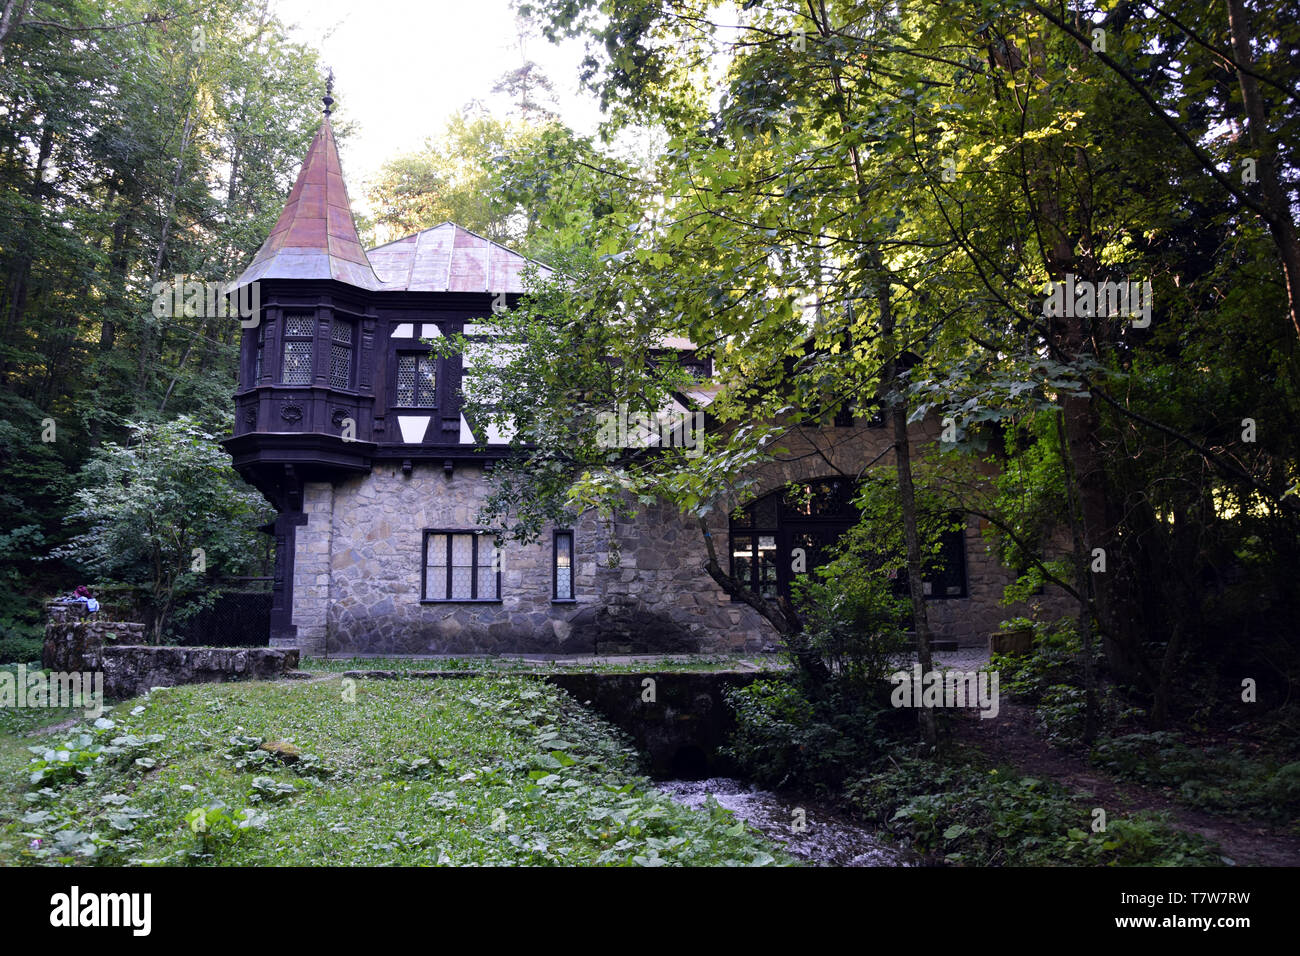 Old traditional Romanian house in Art-Nouveau style. Romania. - Stock Image